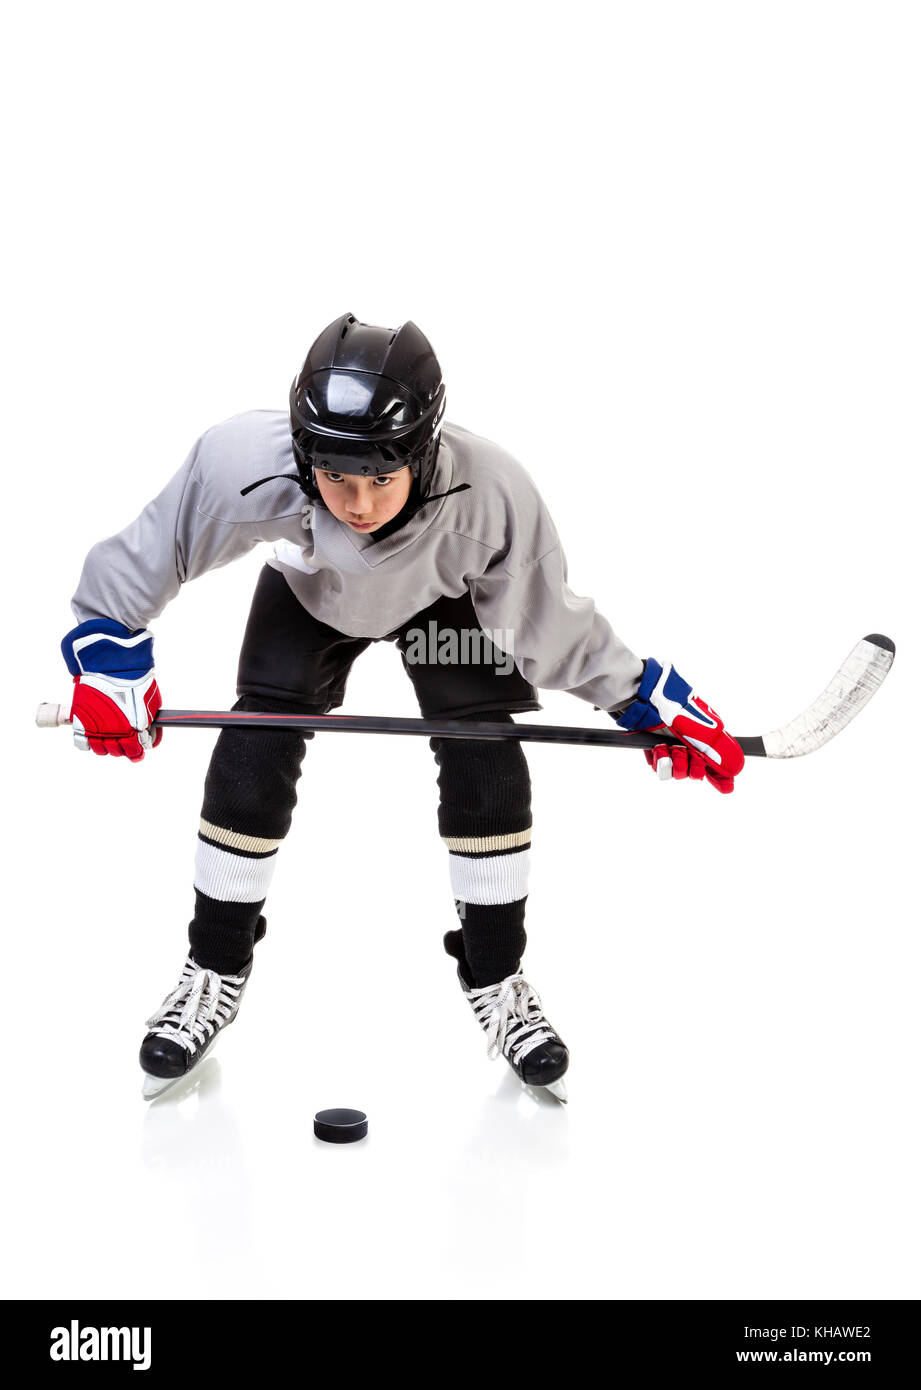 Junior ice hockey player with full equipment and uniform isolated on white background. In faceoff stance with hockey - Stock Image